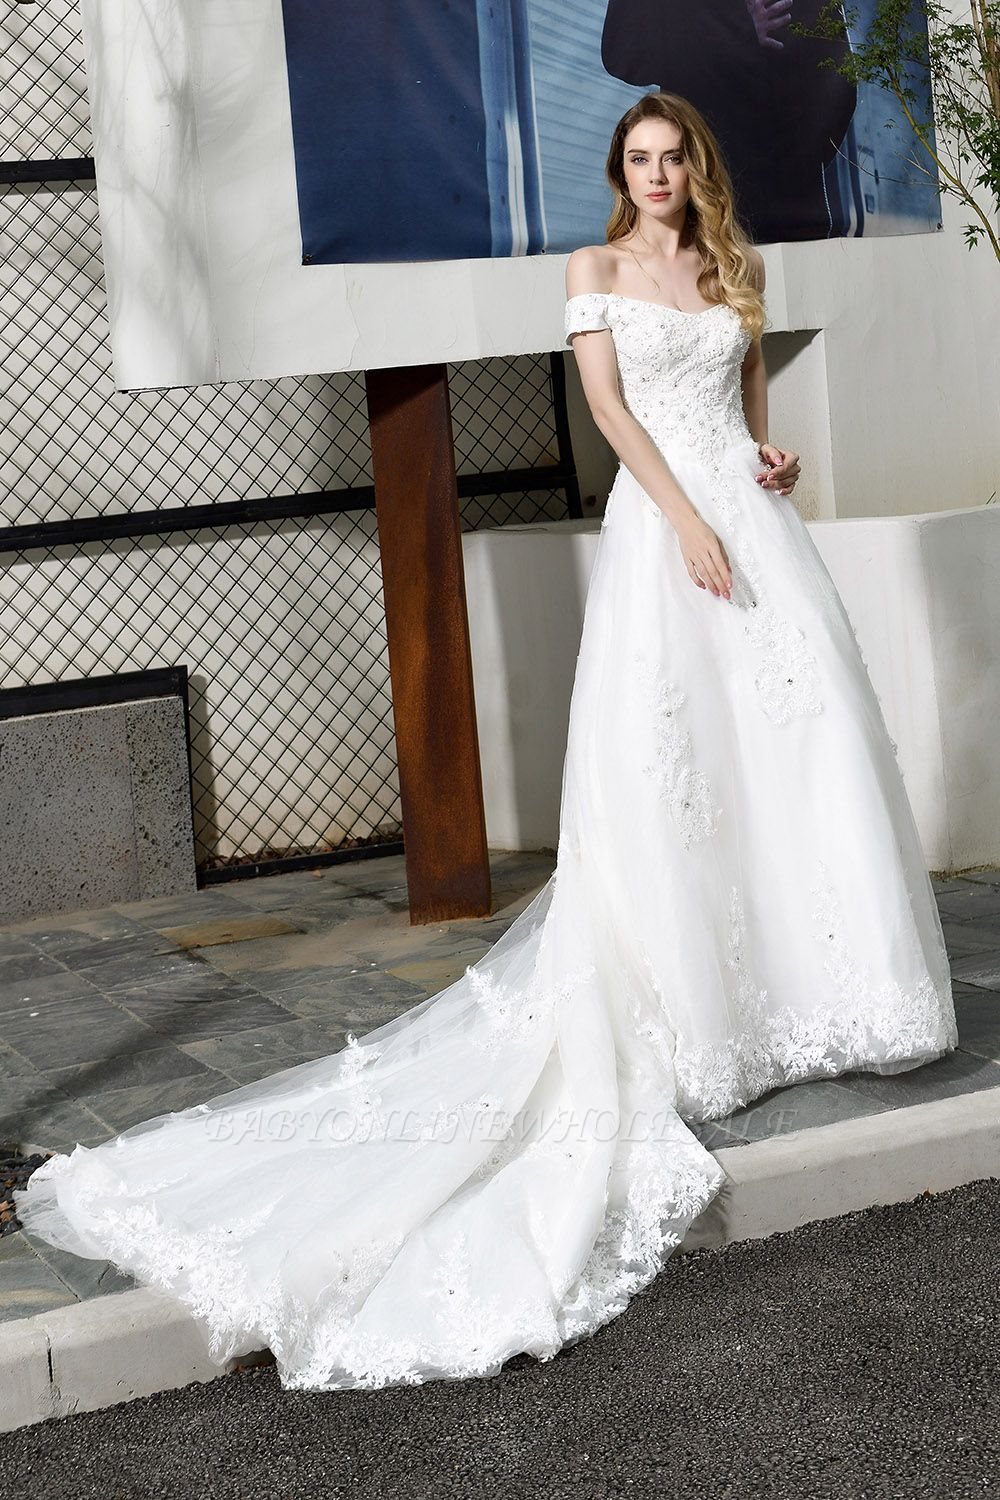 Elegant White Lace Off Shoulder Long Princess Wedding Dress with Beaded Lace Appliques